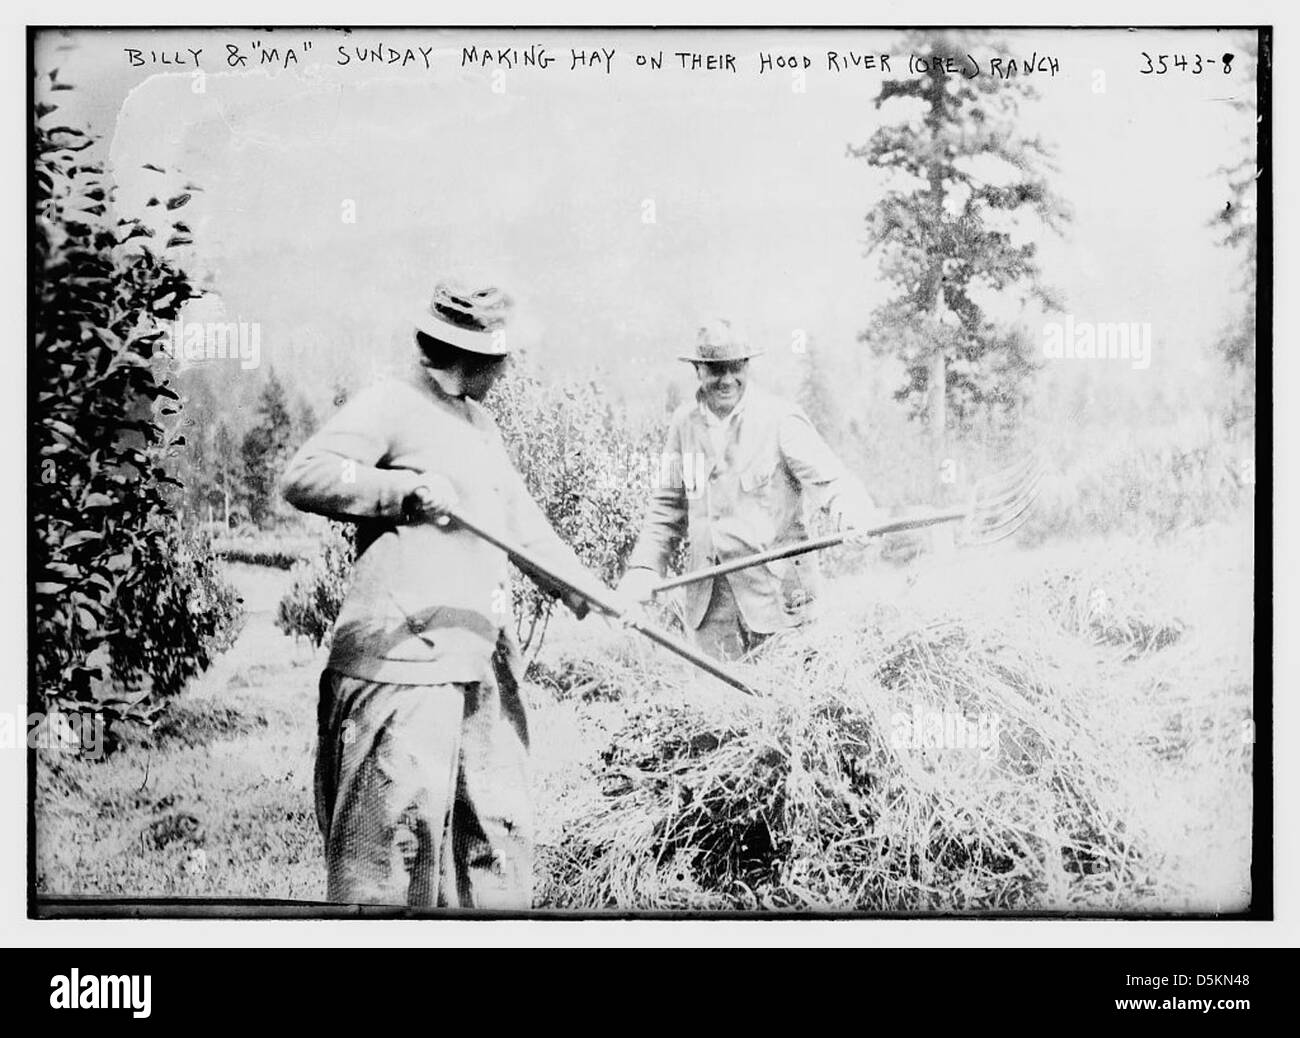 Billy and 'Ma' Sunday making hay on their Hood River (Ore.) ranch (LOC) - Stock Image